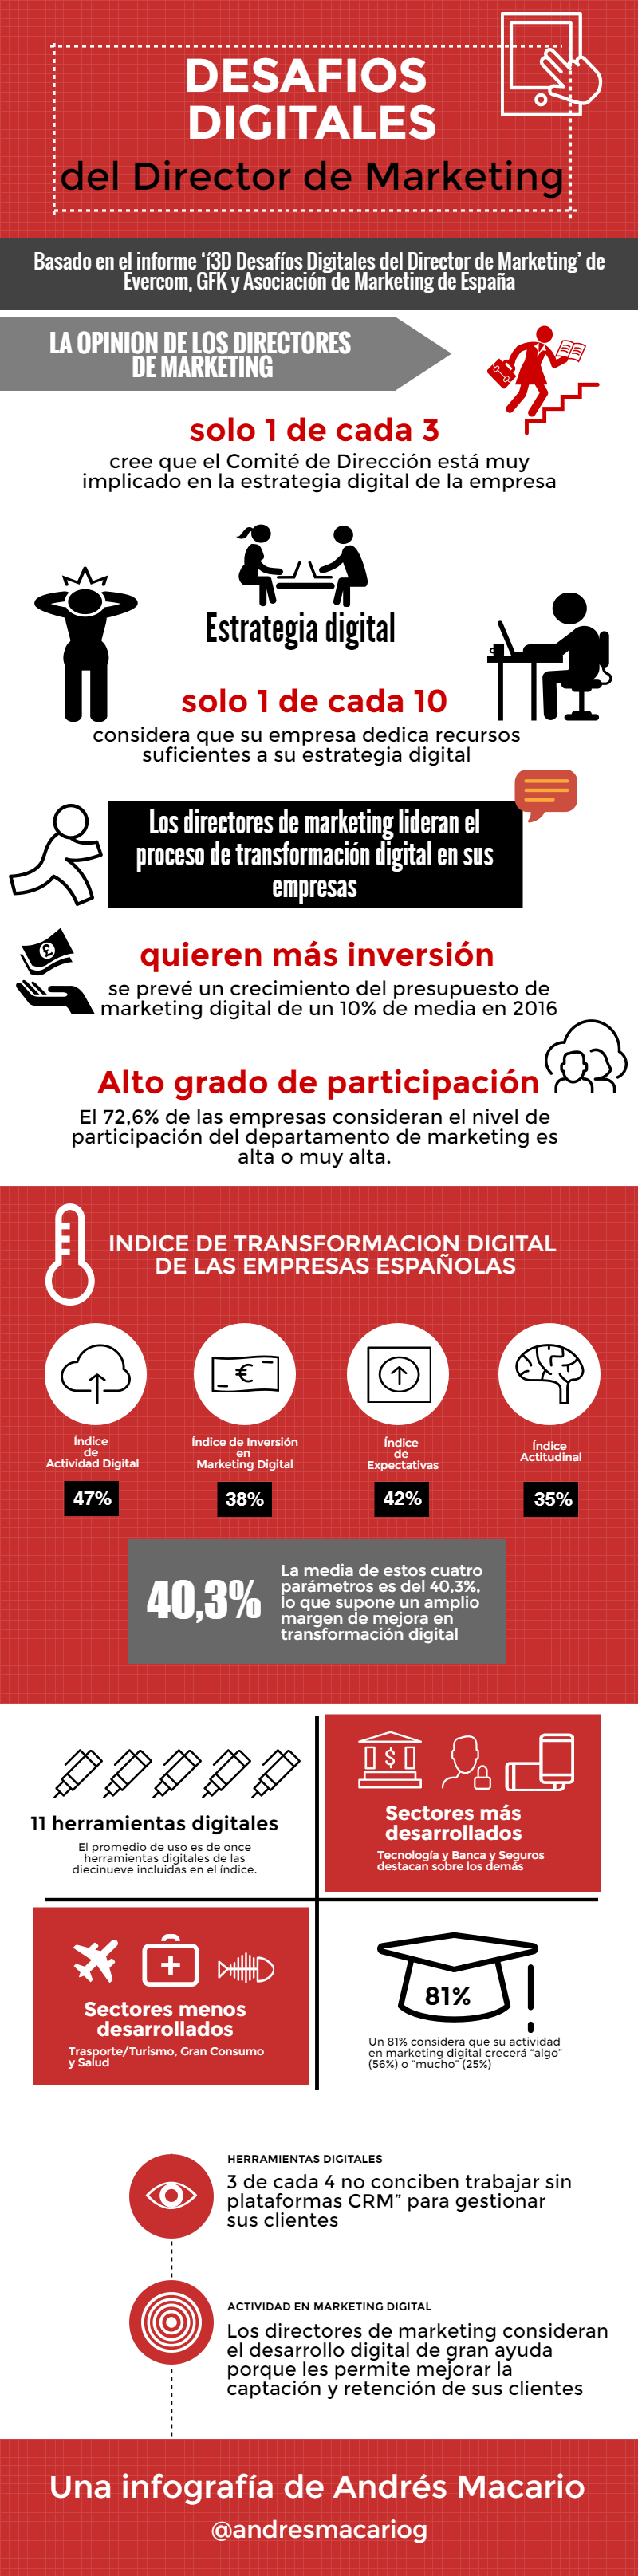 Desafios digitales del director de marketing Infografia Andres Macario